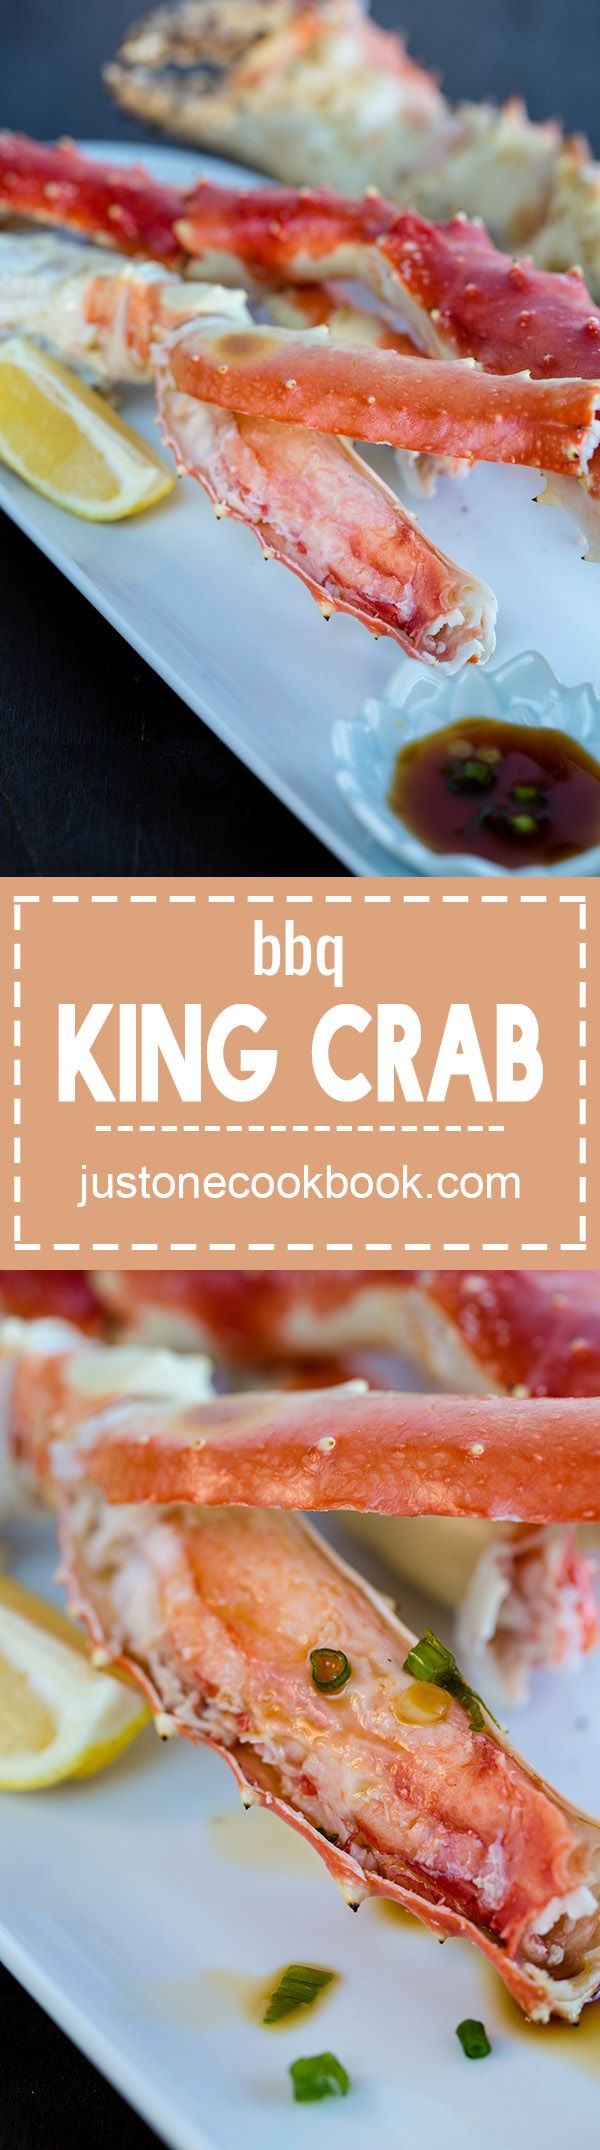 BBQ King Crab with Ponzu Sauce | Easy Japanese Recipes at JustOneCookbook.com